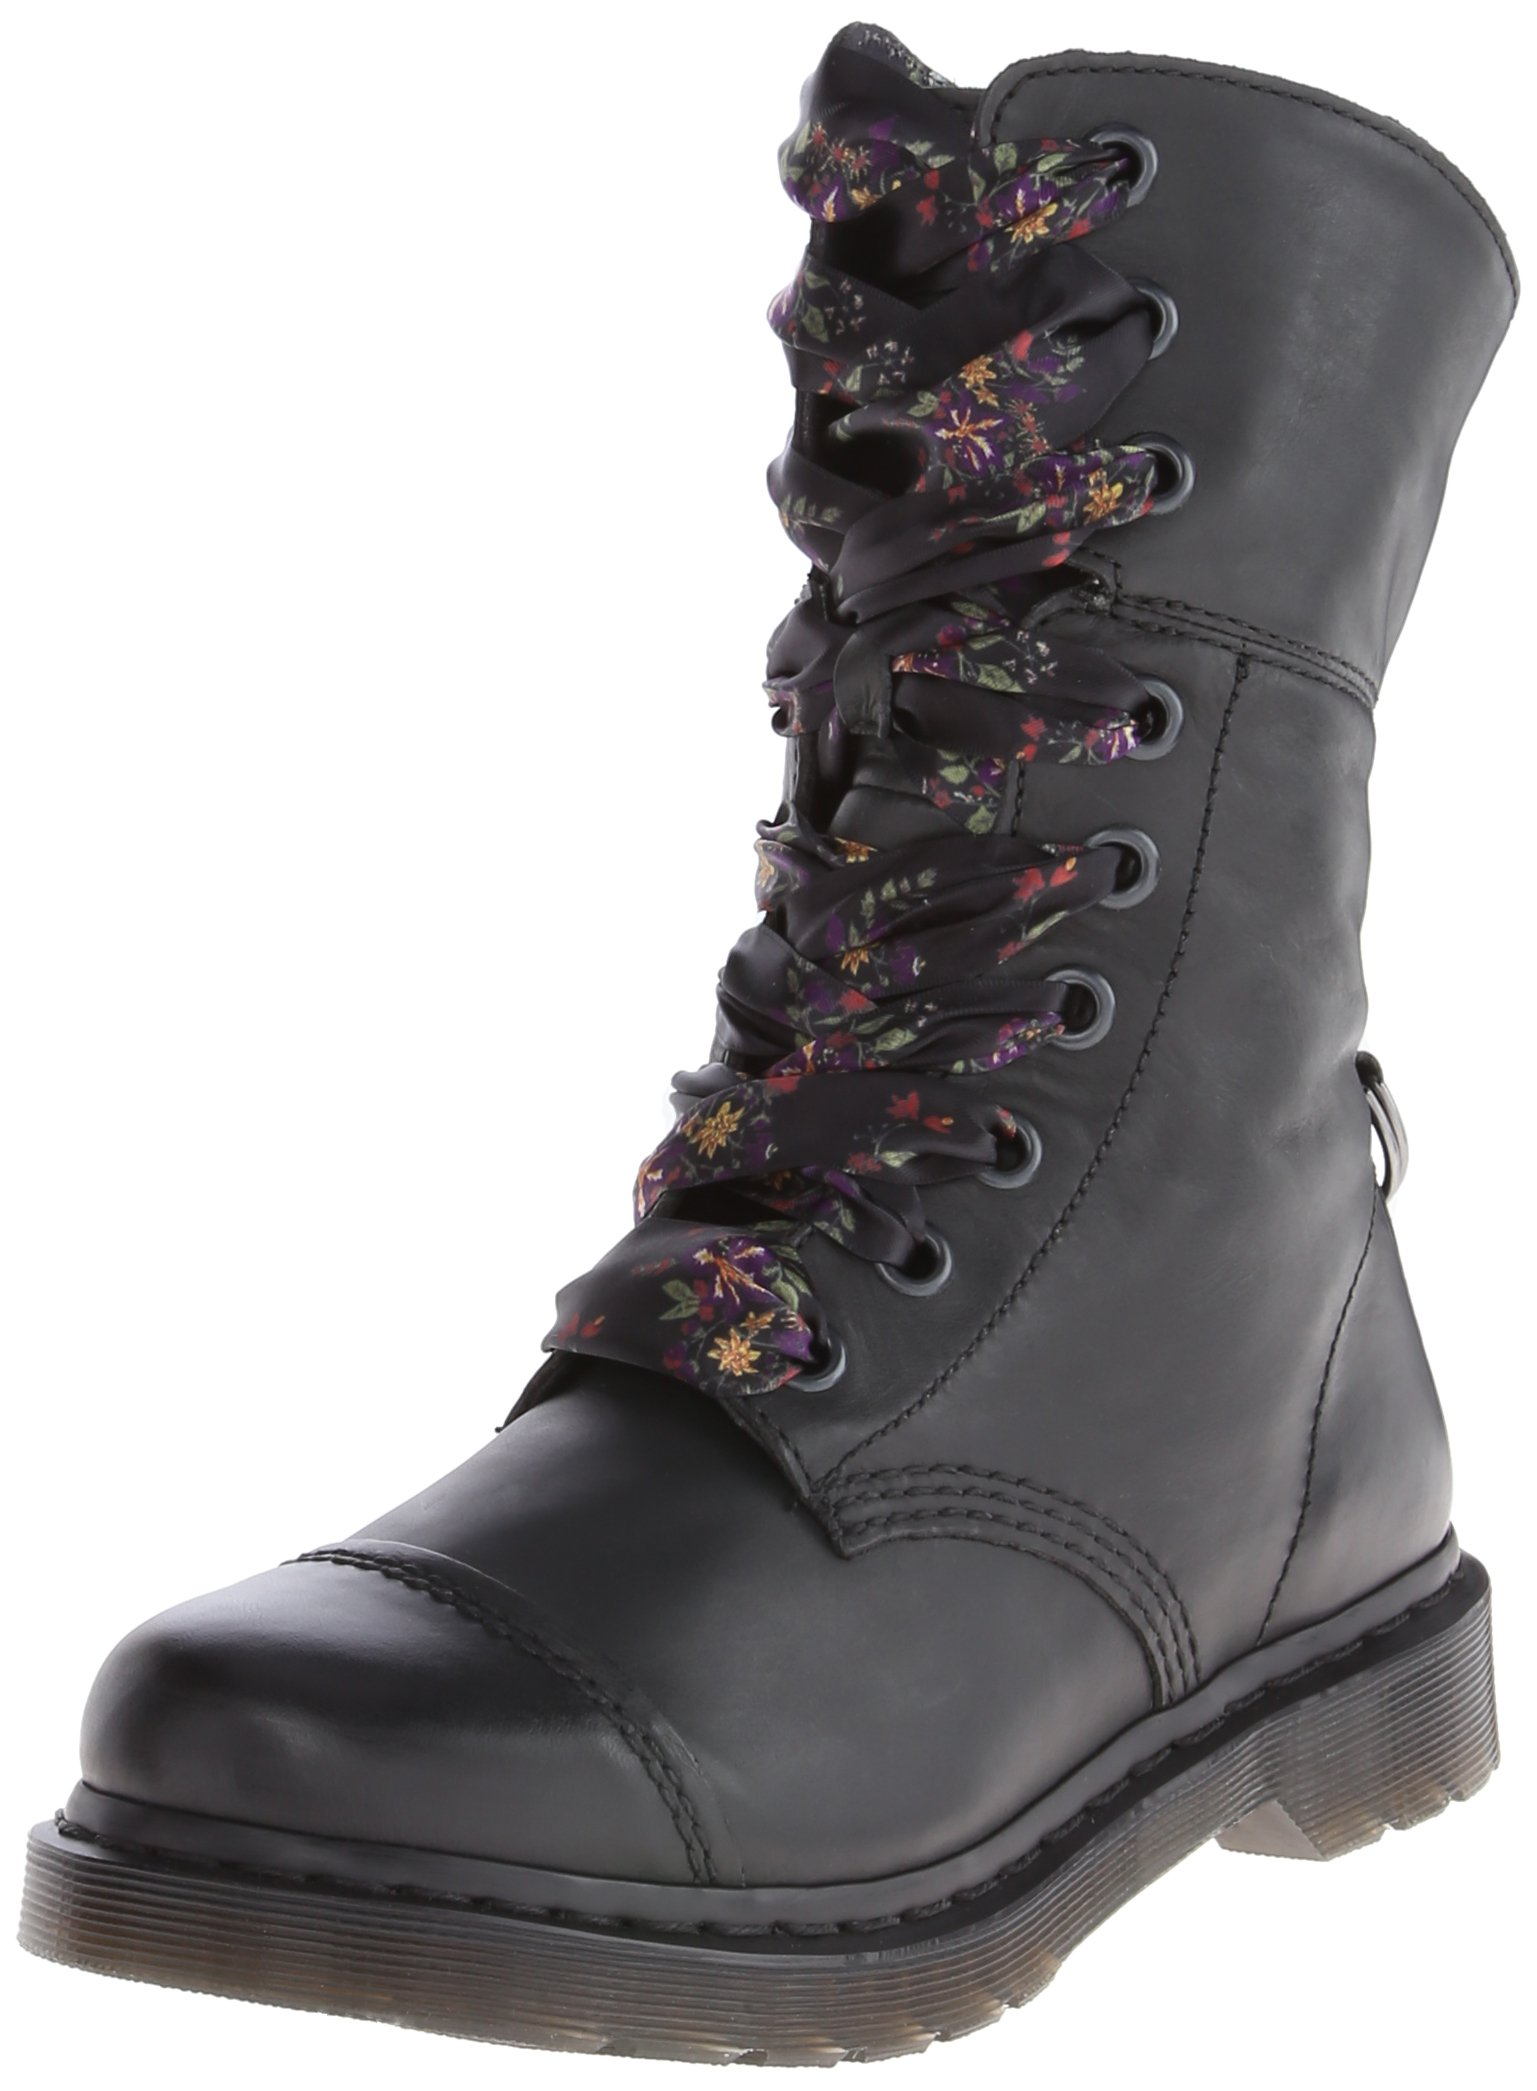 Dr. Martens Women's Aimilita 9 Eye Toe Cap Boot,Black,3 UK/5 M US by Dr. Martens